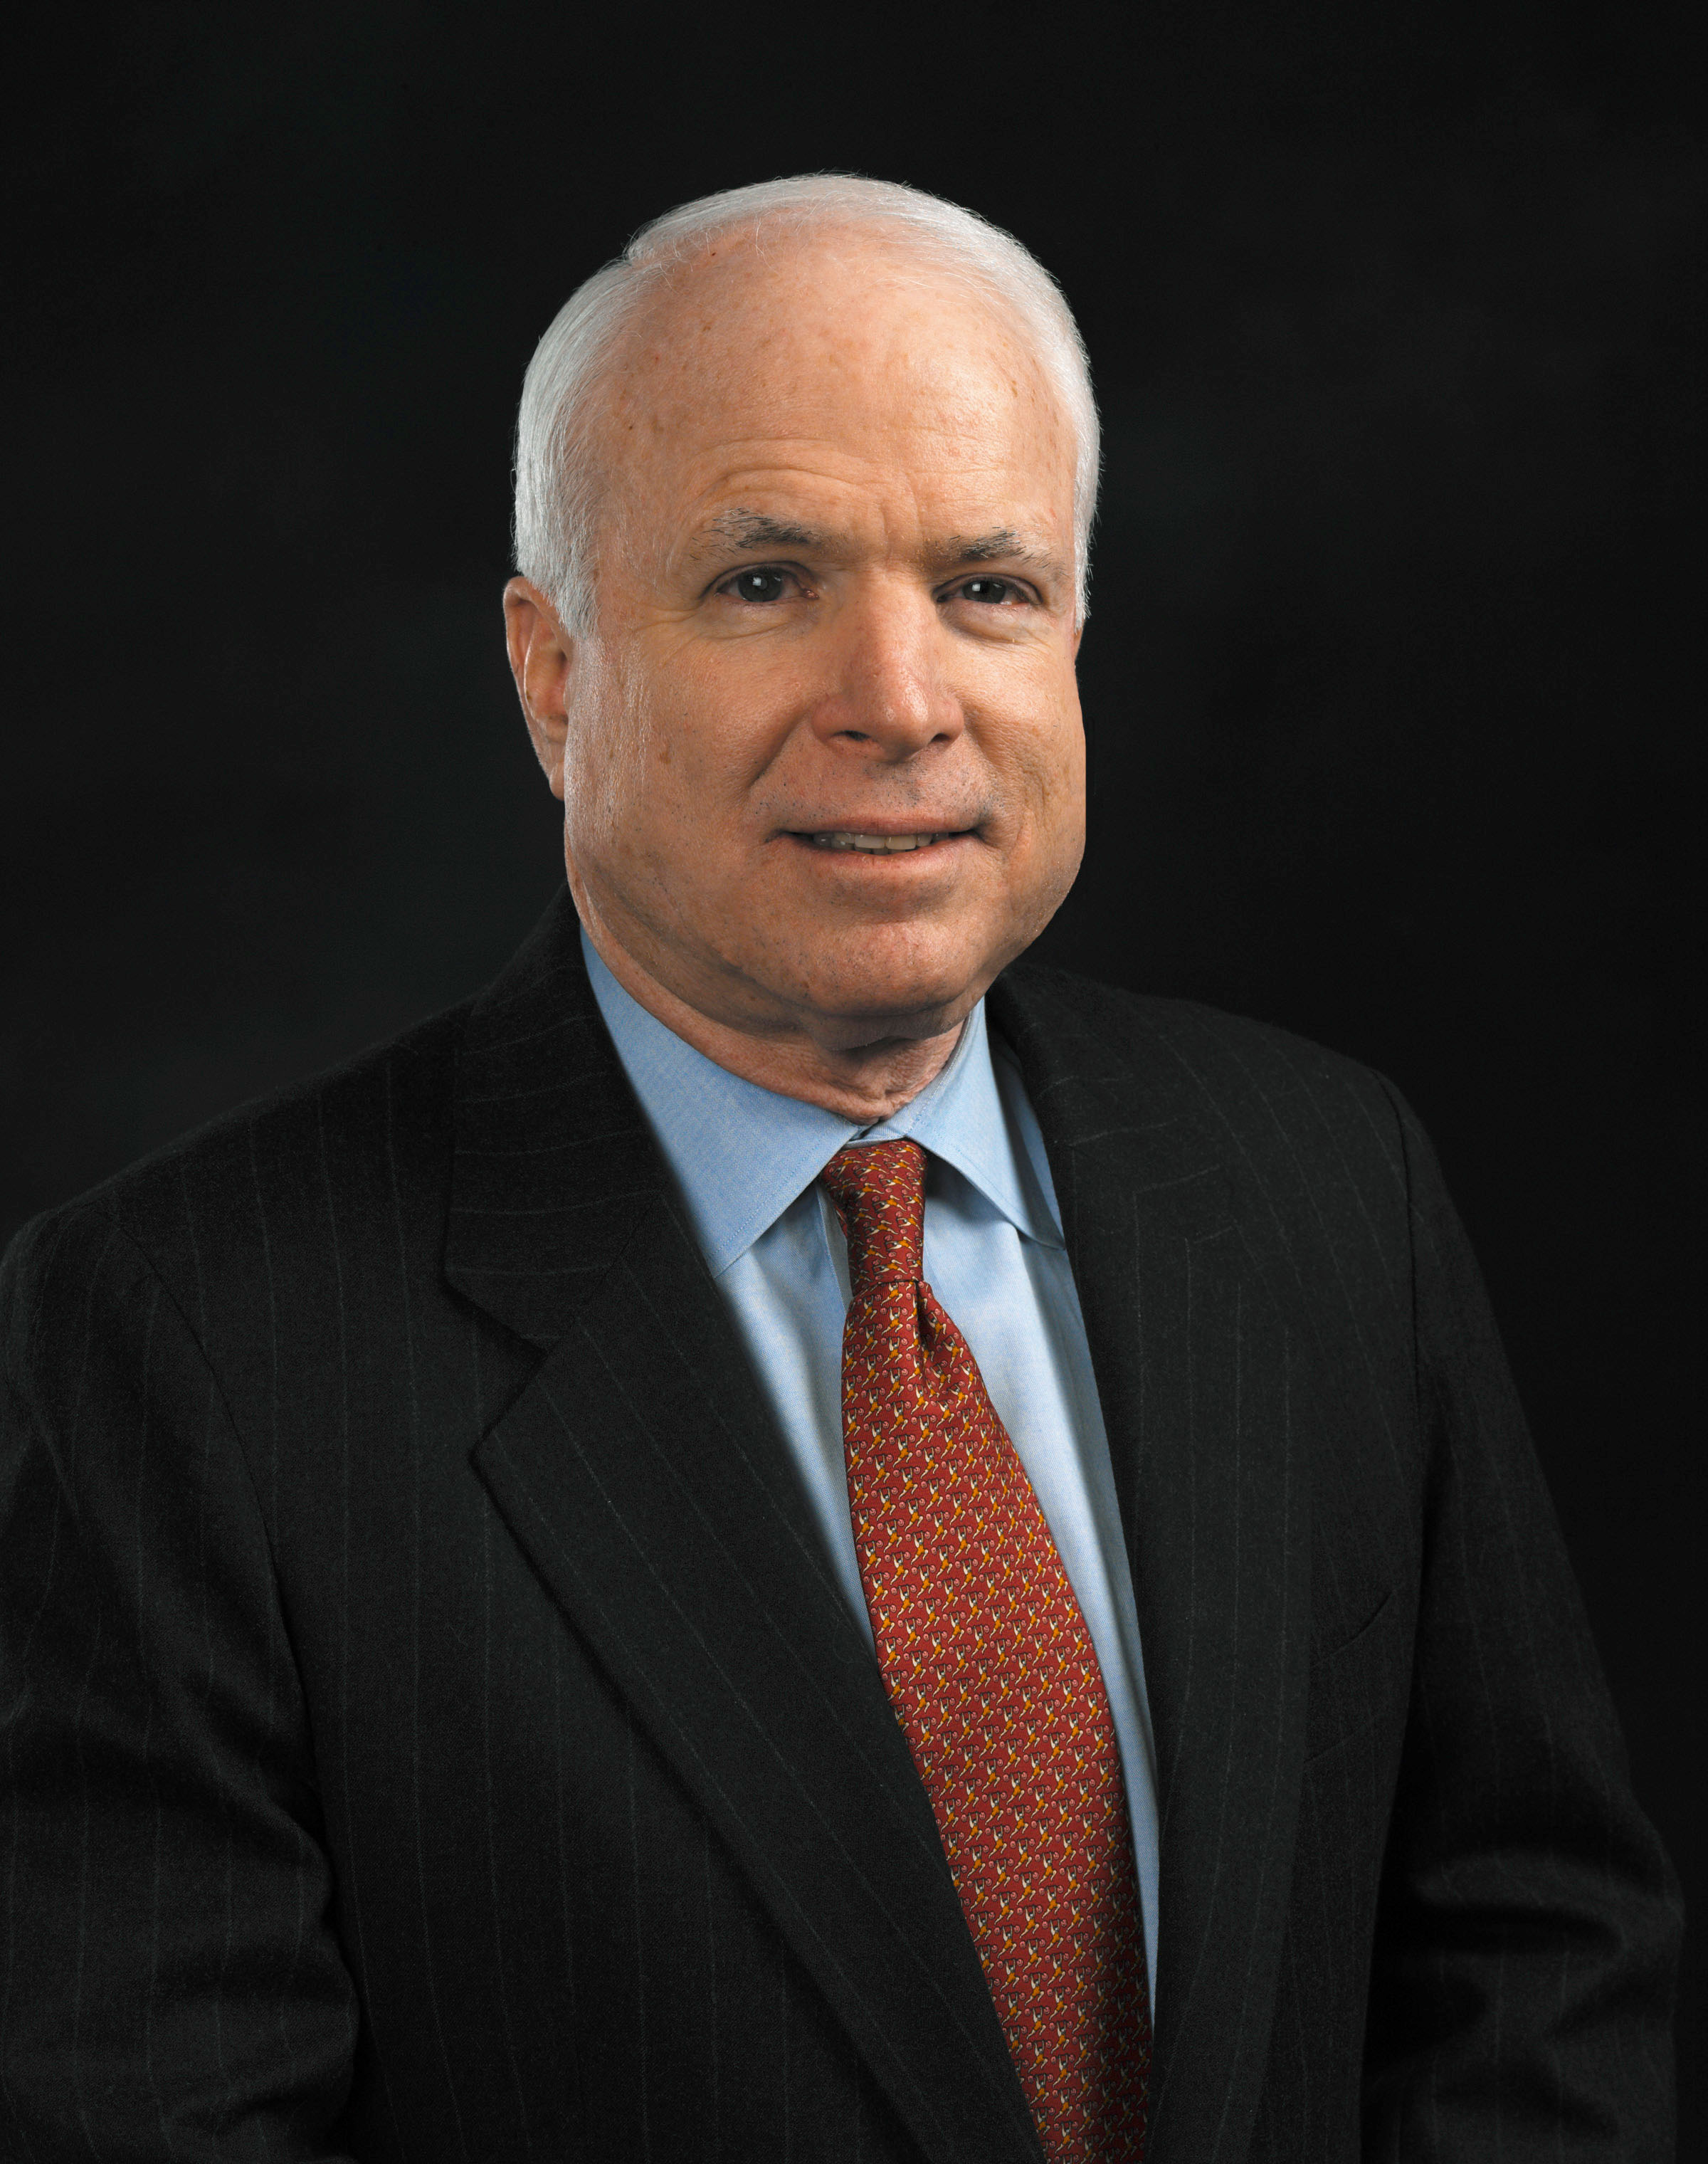 File:JOHN MCCAIN official photo portrait.JPG - Wikimedia Commons